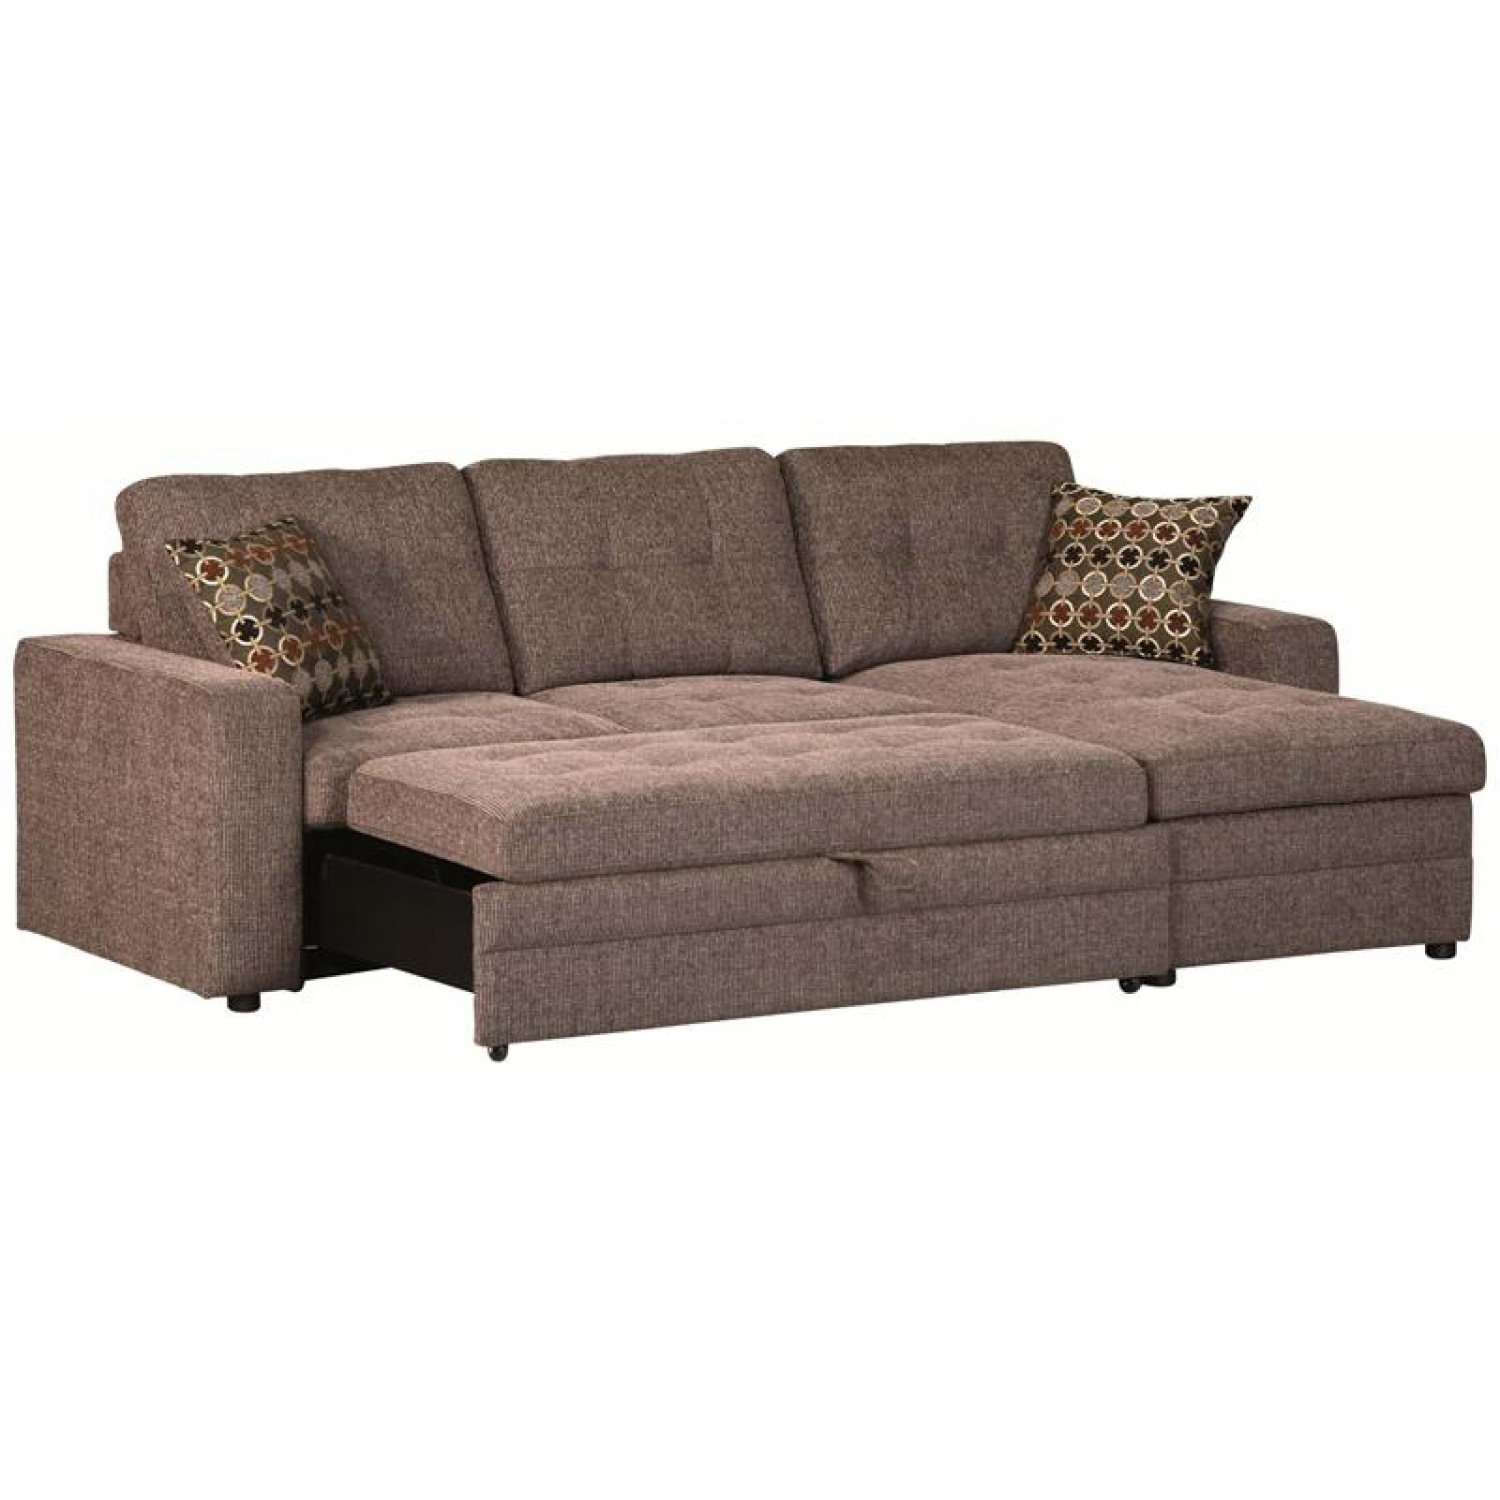 Sectional Sofa Design: Sectional Sofa With Pull Out Bed Recliner inside Pull Out Beds Sectional Sofas (Image 7 of 10)